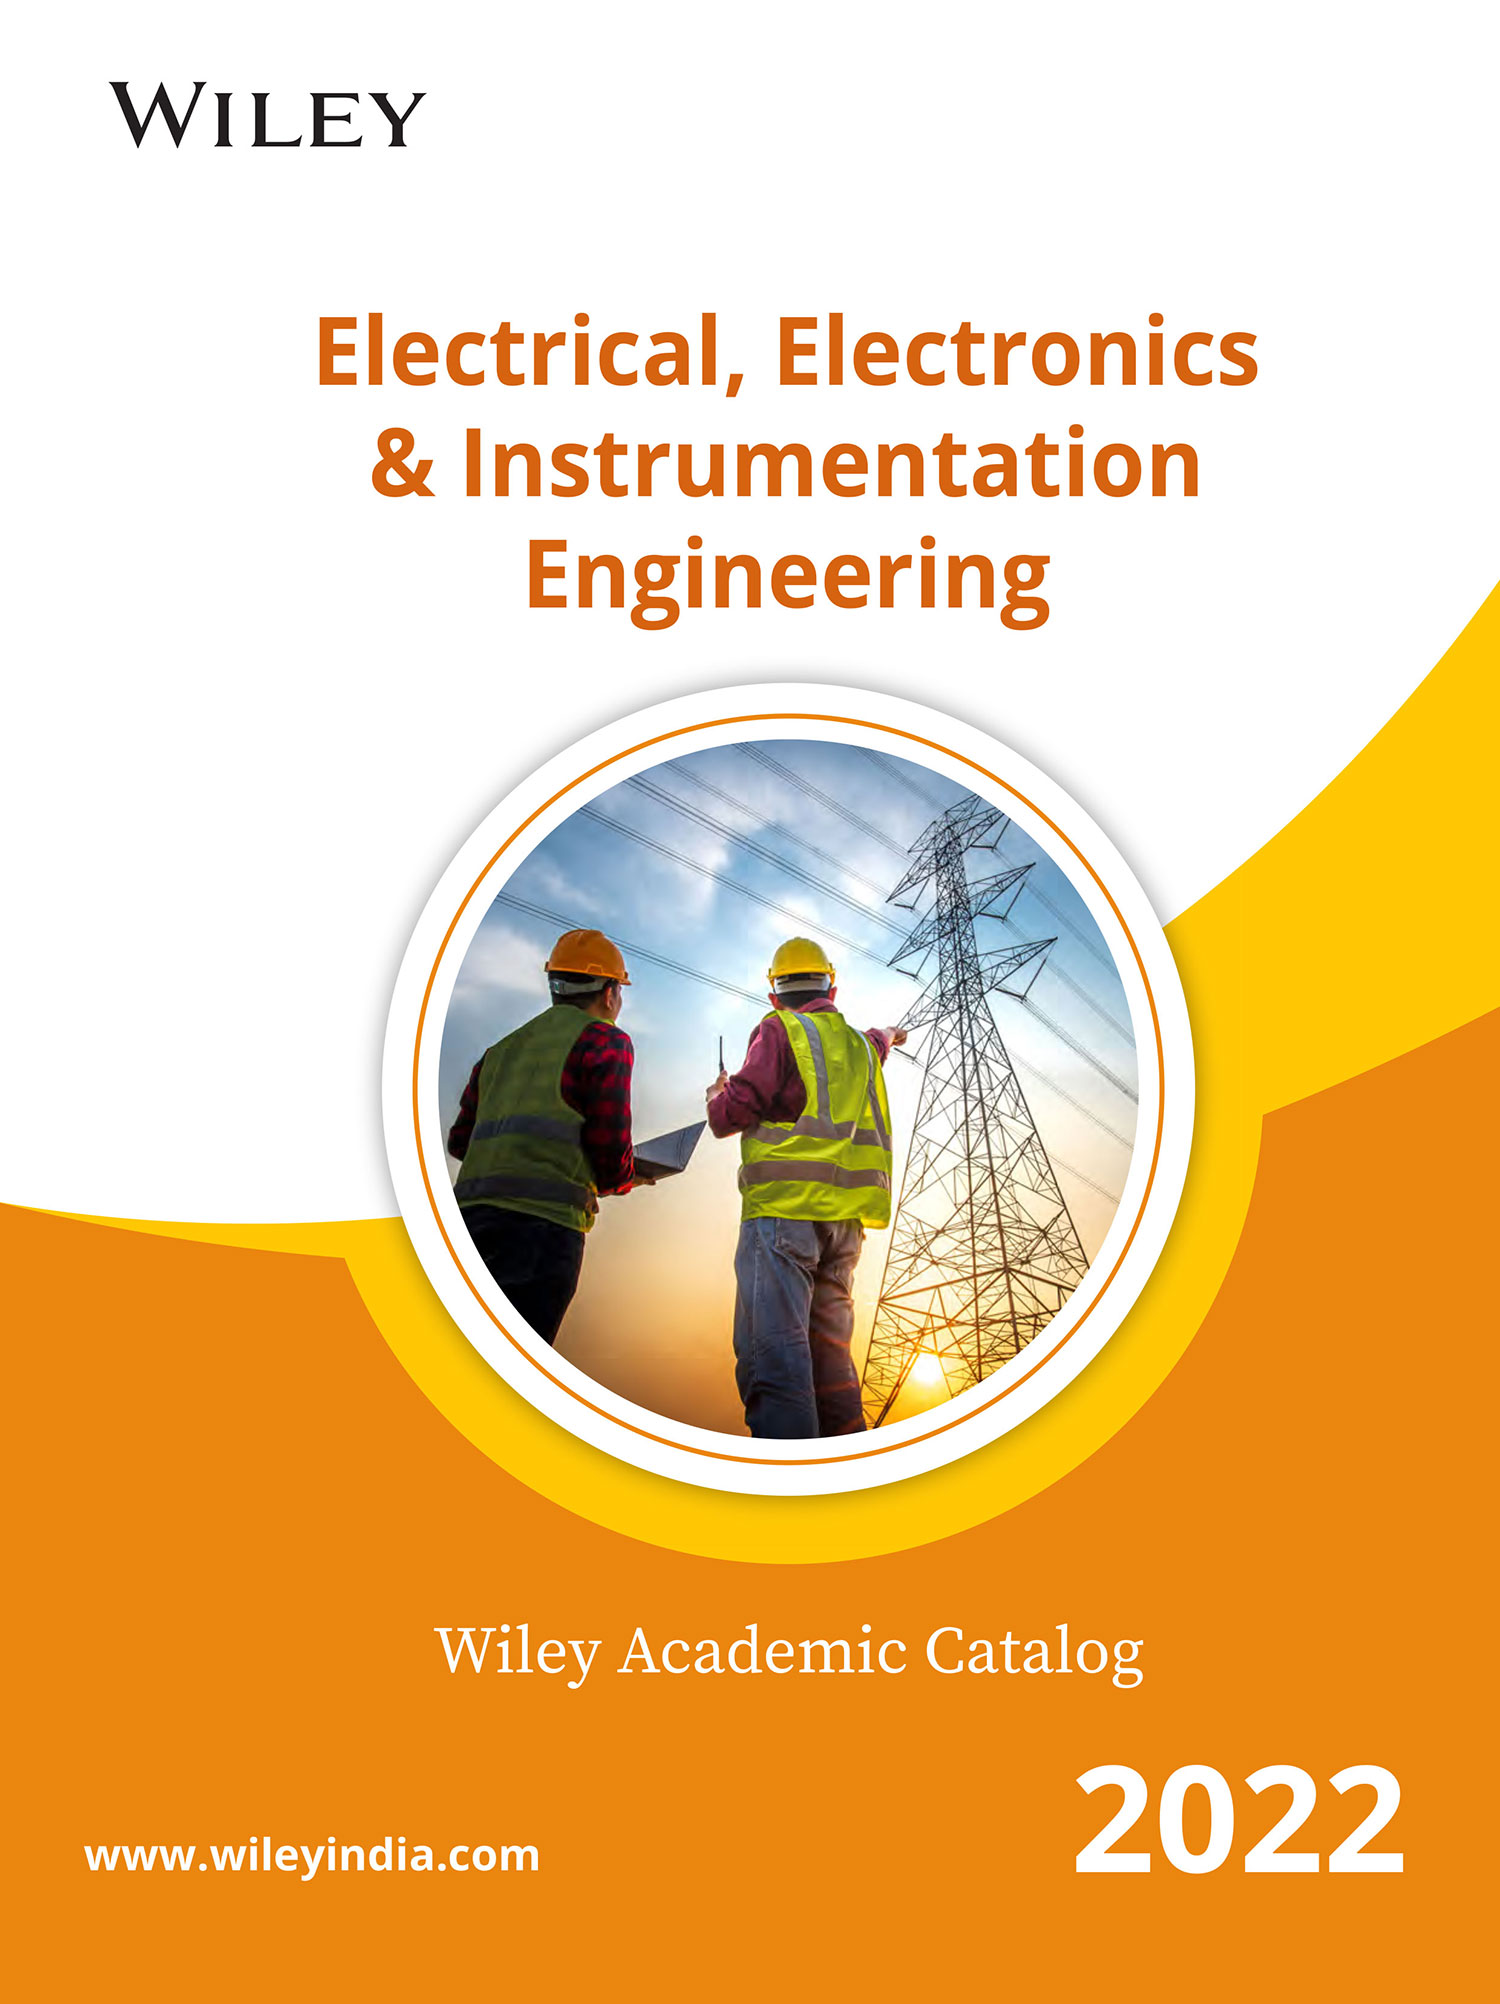 Wiley Electrical Electronics Catalog 2021